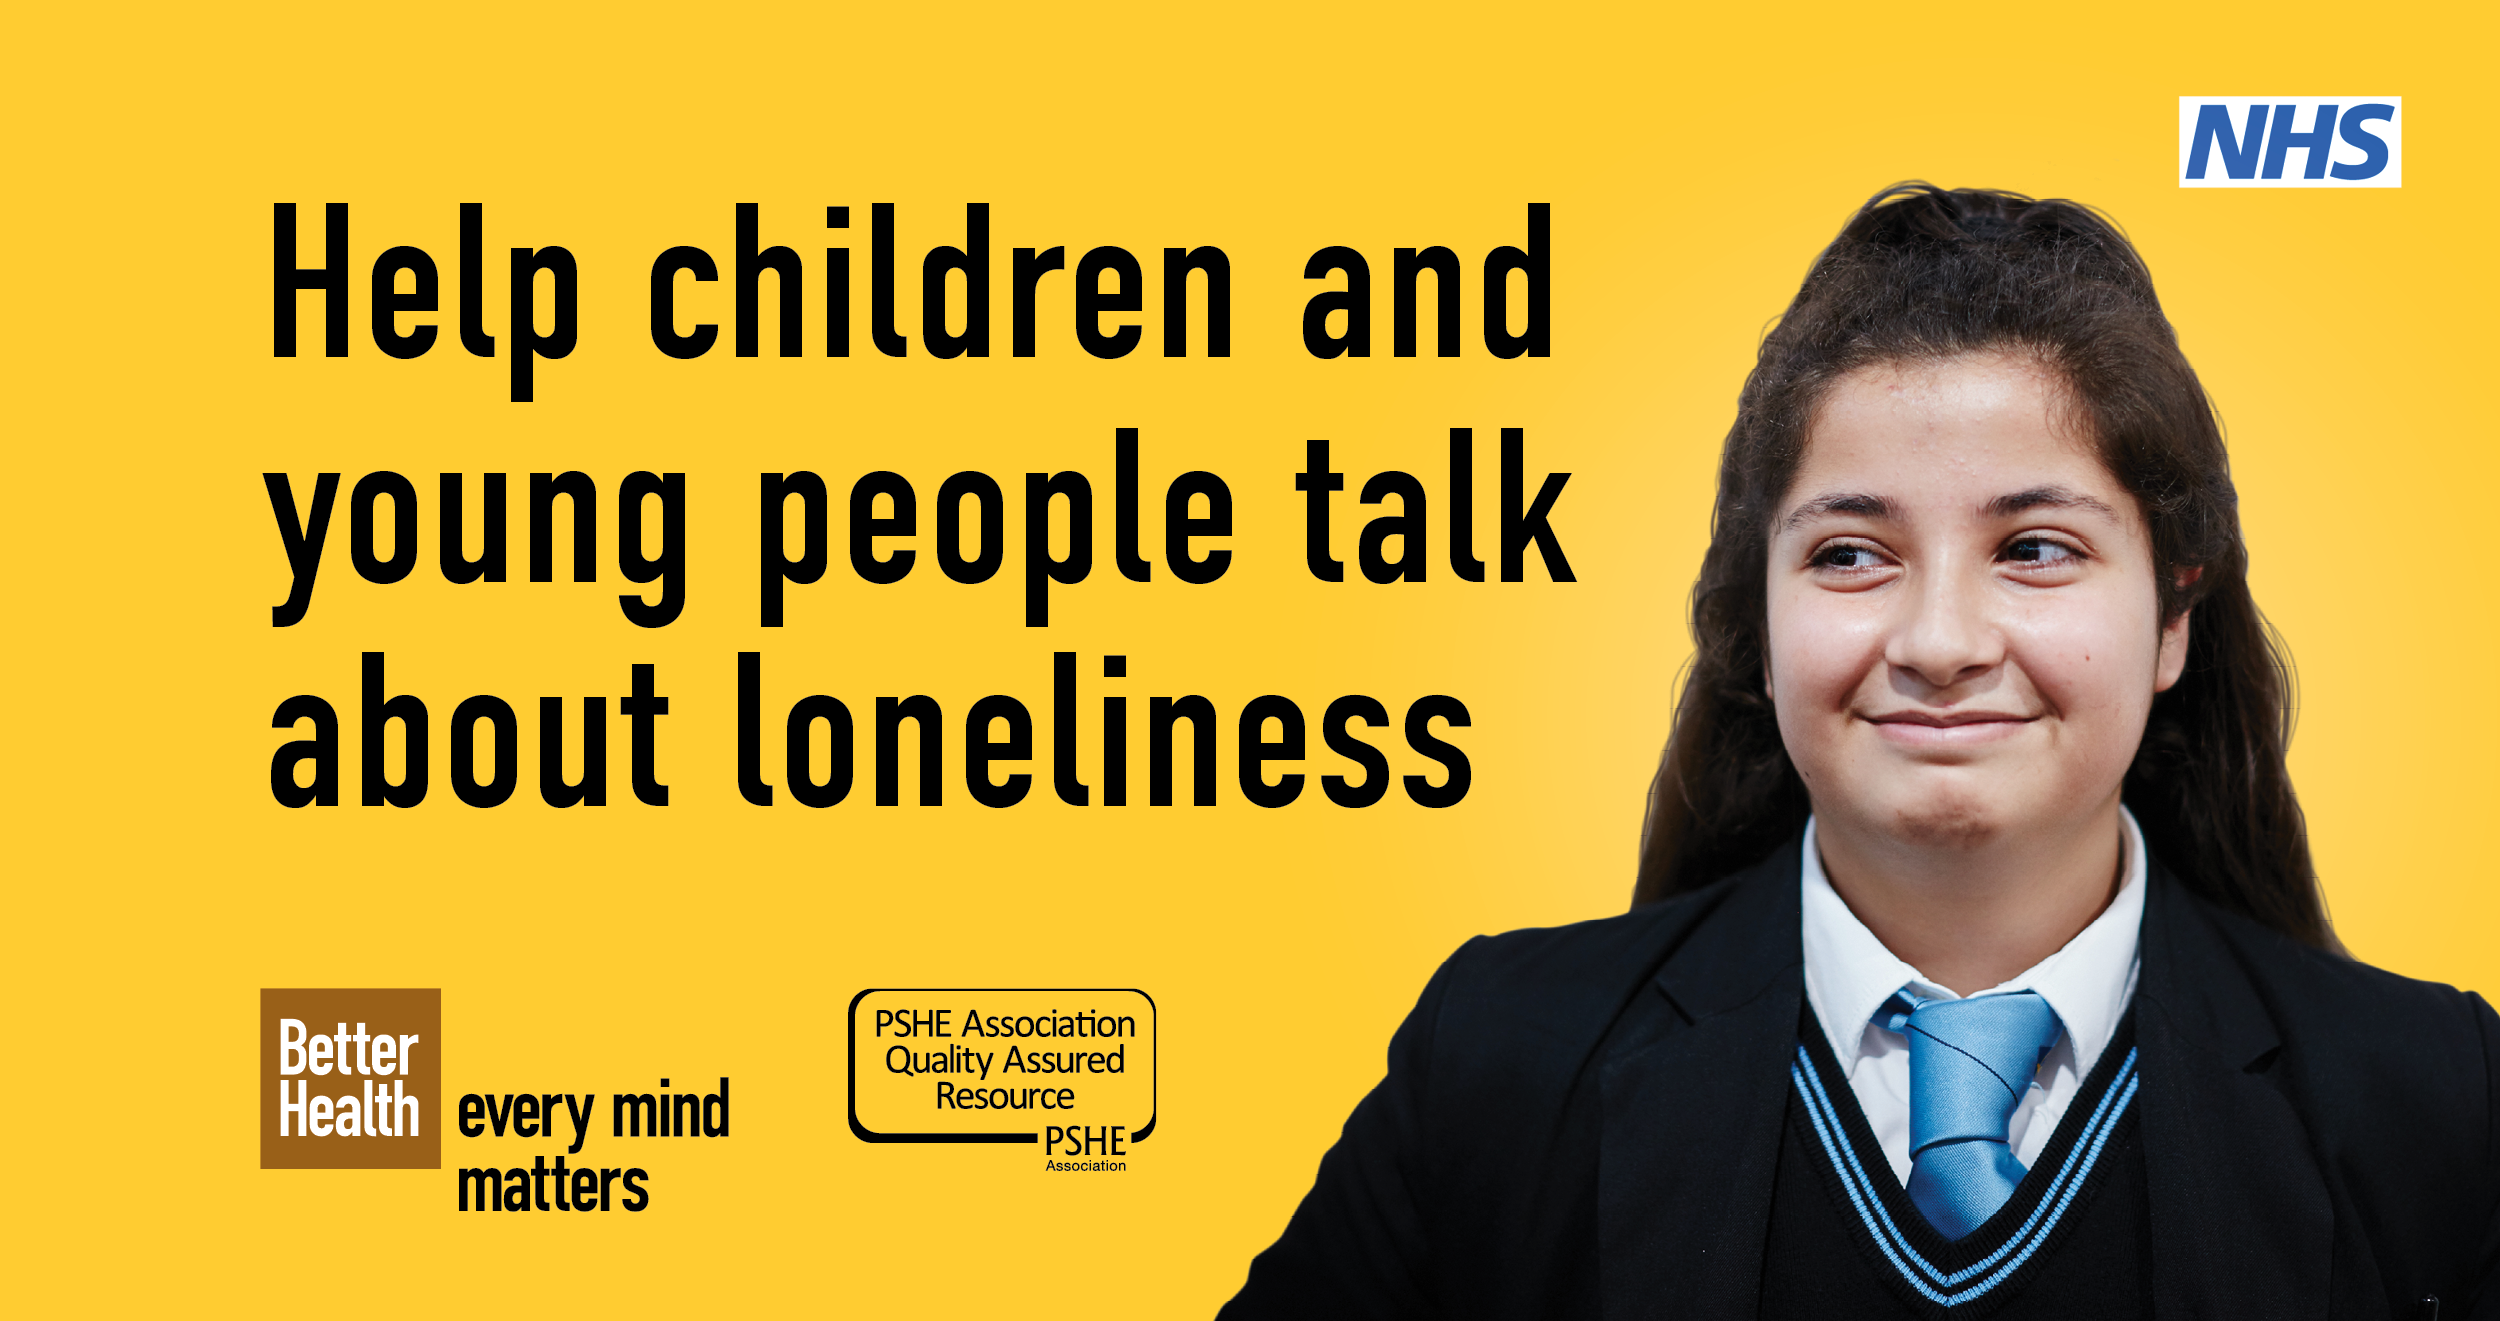 Help children and young people talk about loneliness